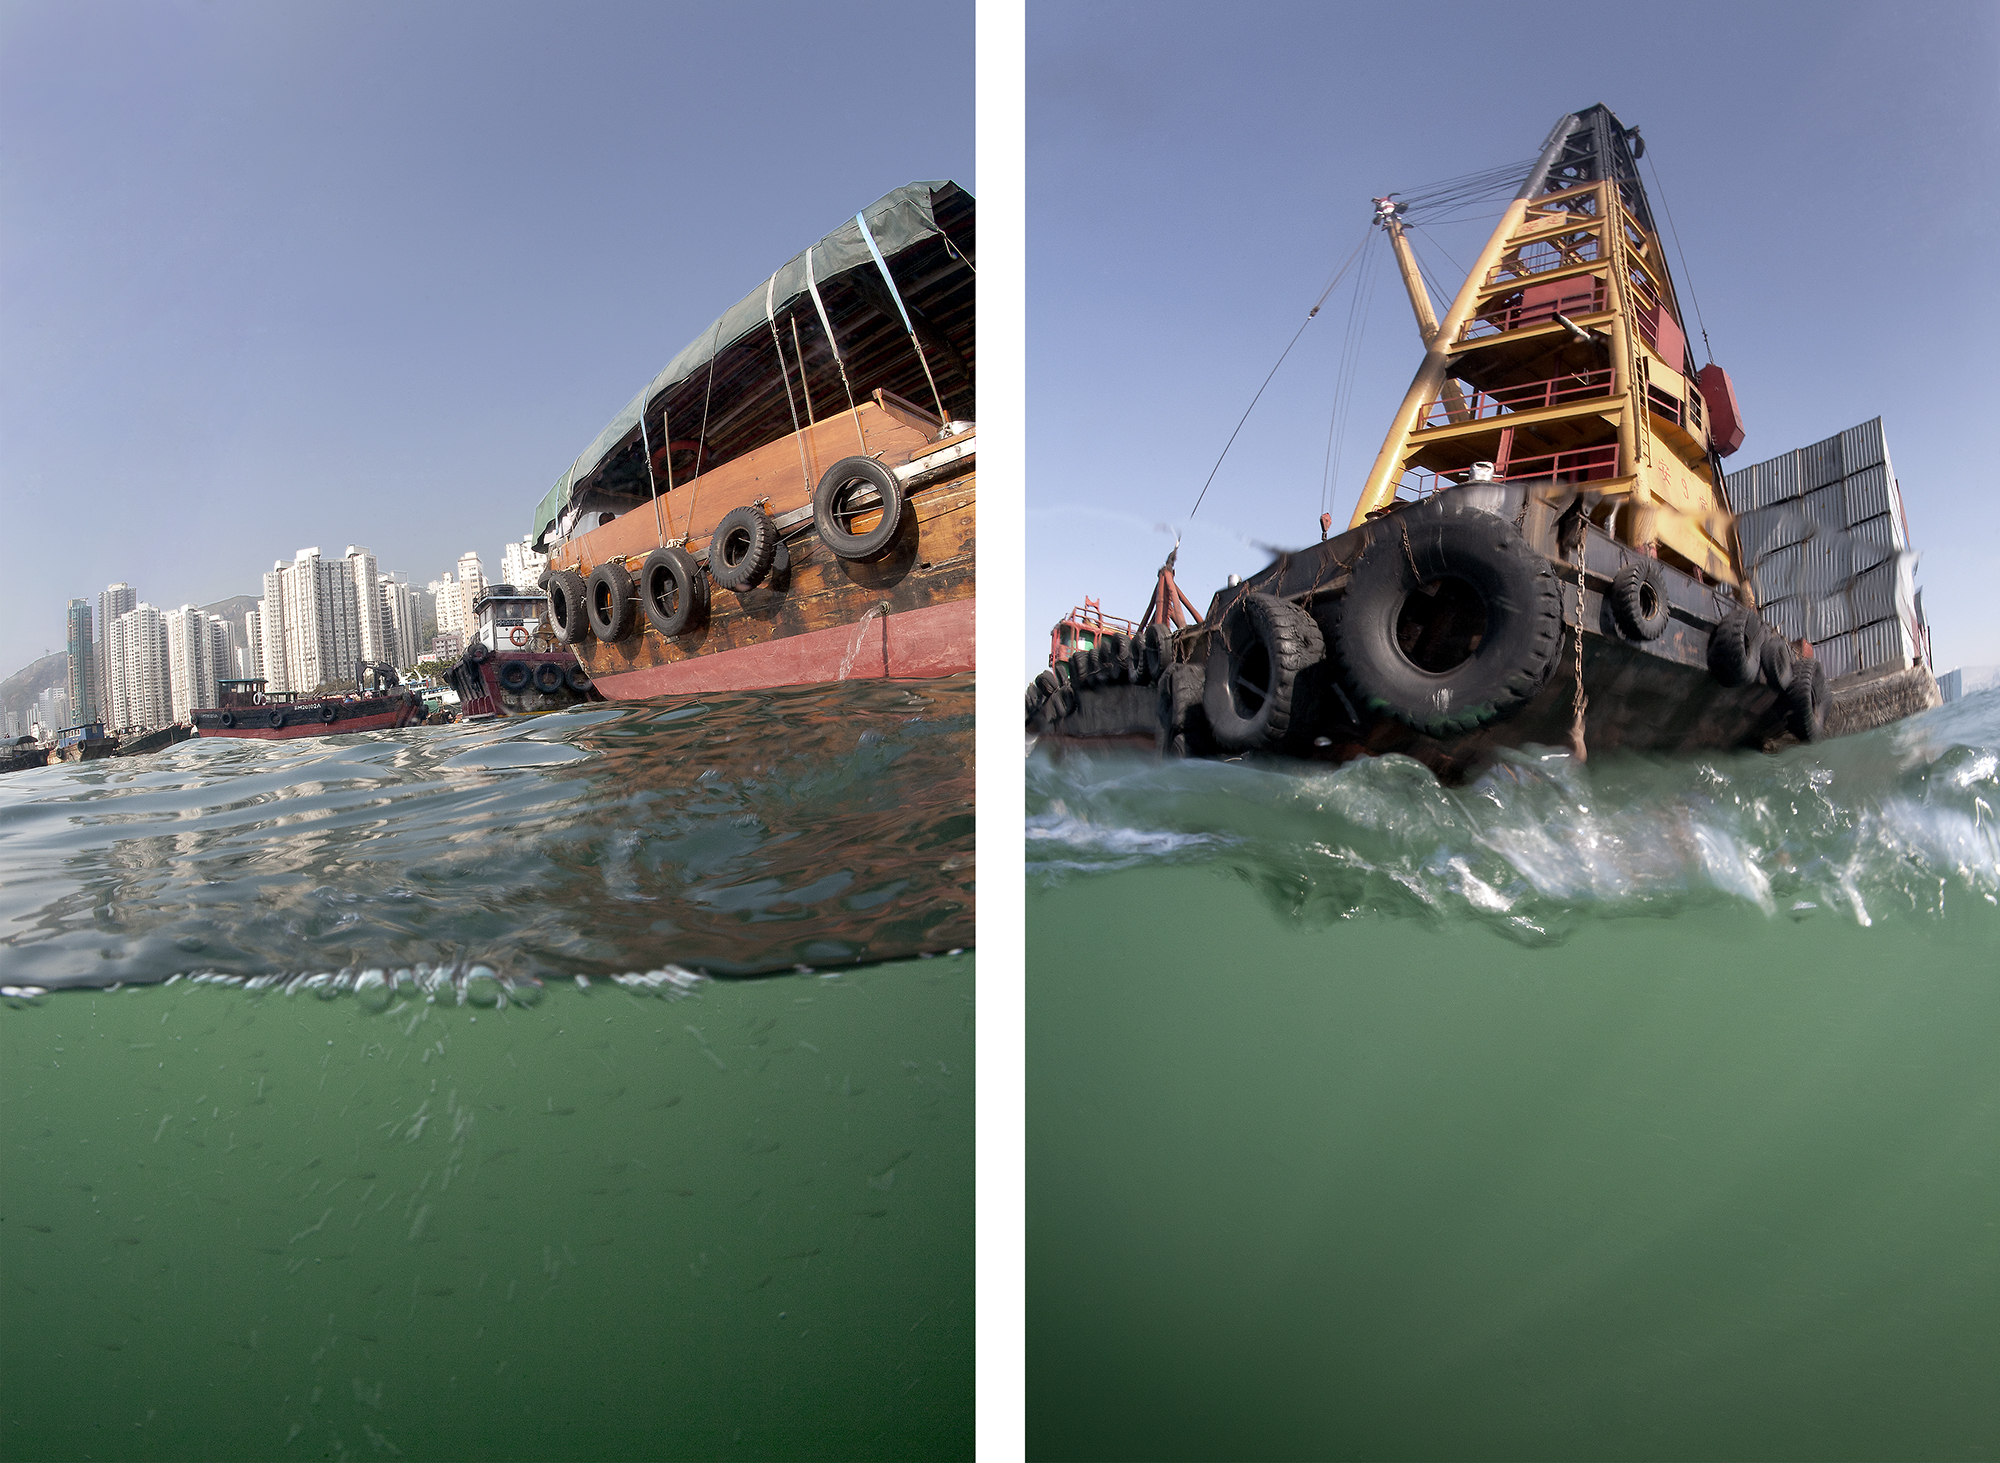 Hong Kong Island. Ap Lei Chau, 2009 | Kowloon. From a Boat in Victoria Harbour, 2009